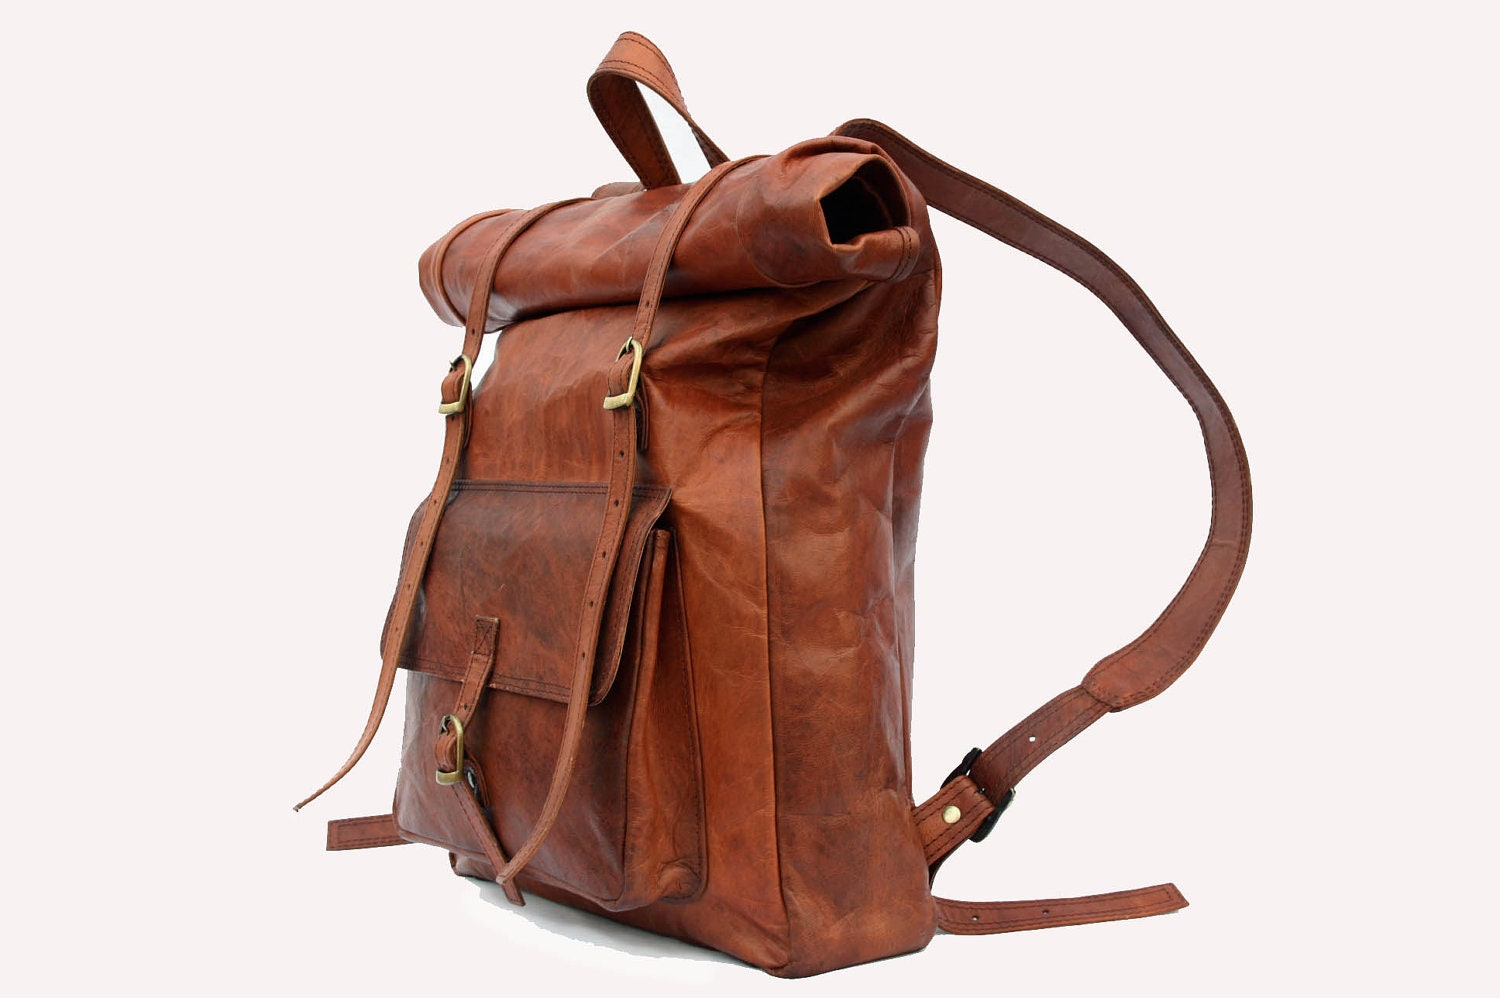 Leather Backpack Deals On 1001 Blocks